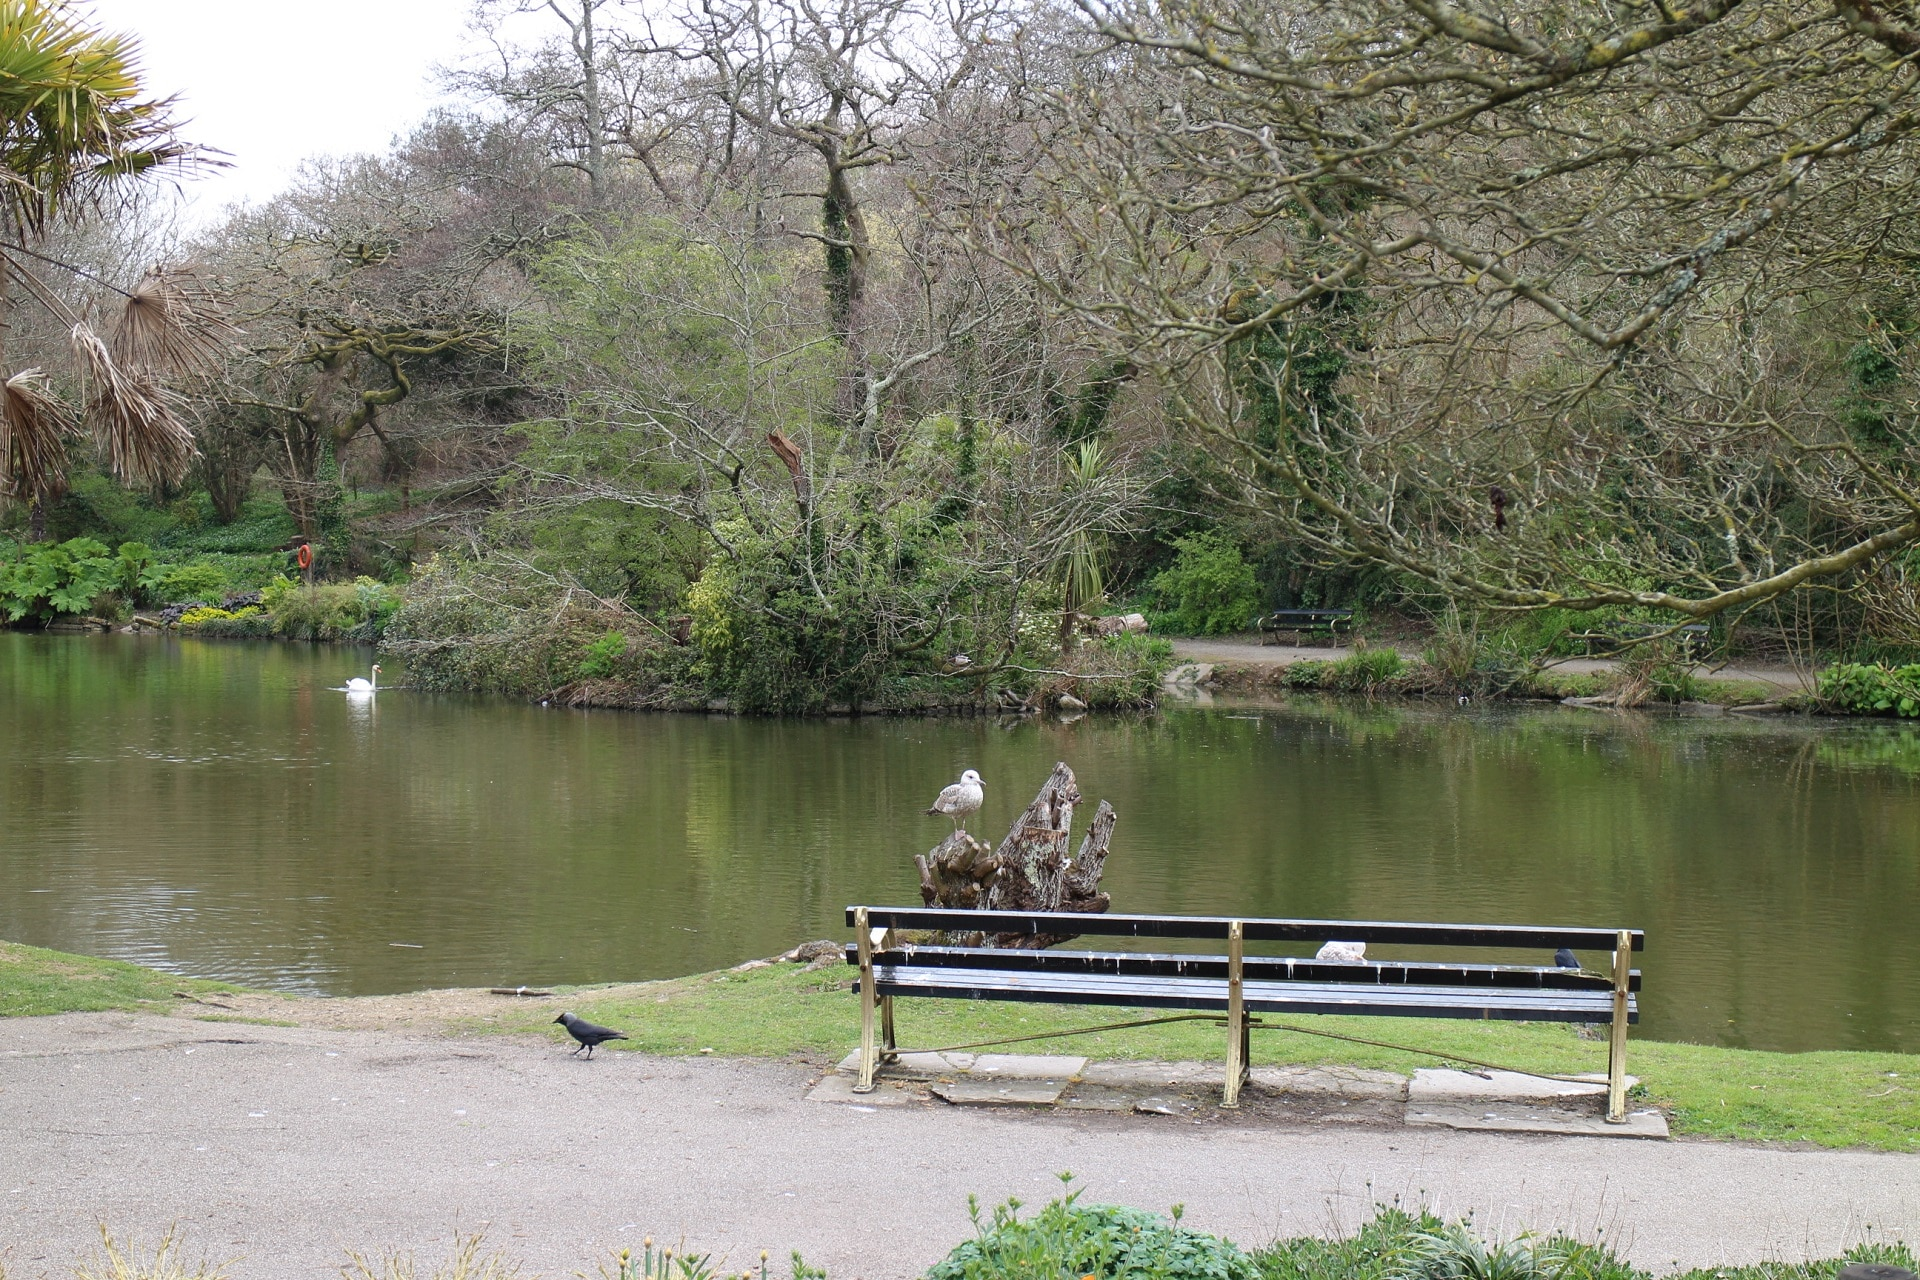 Pond with a seat in the foreground